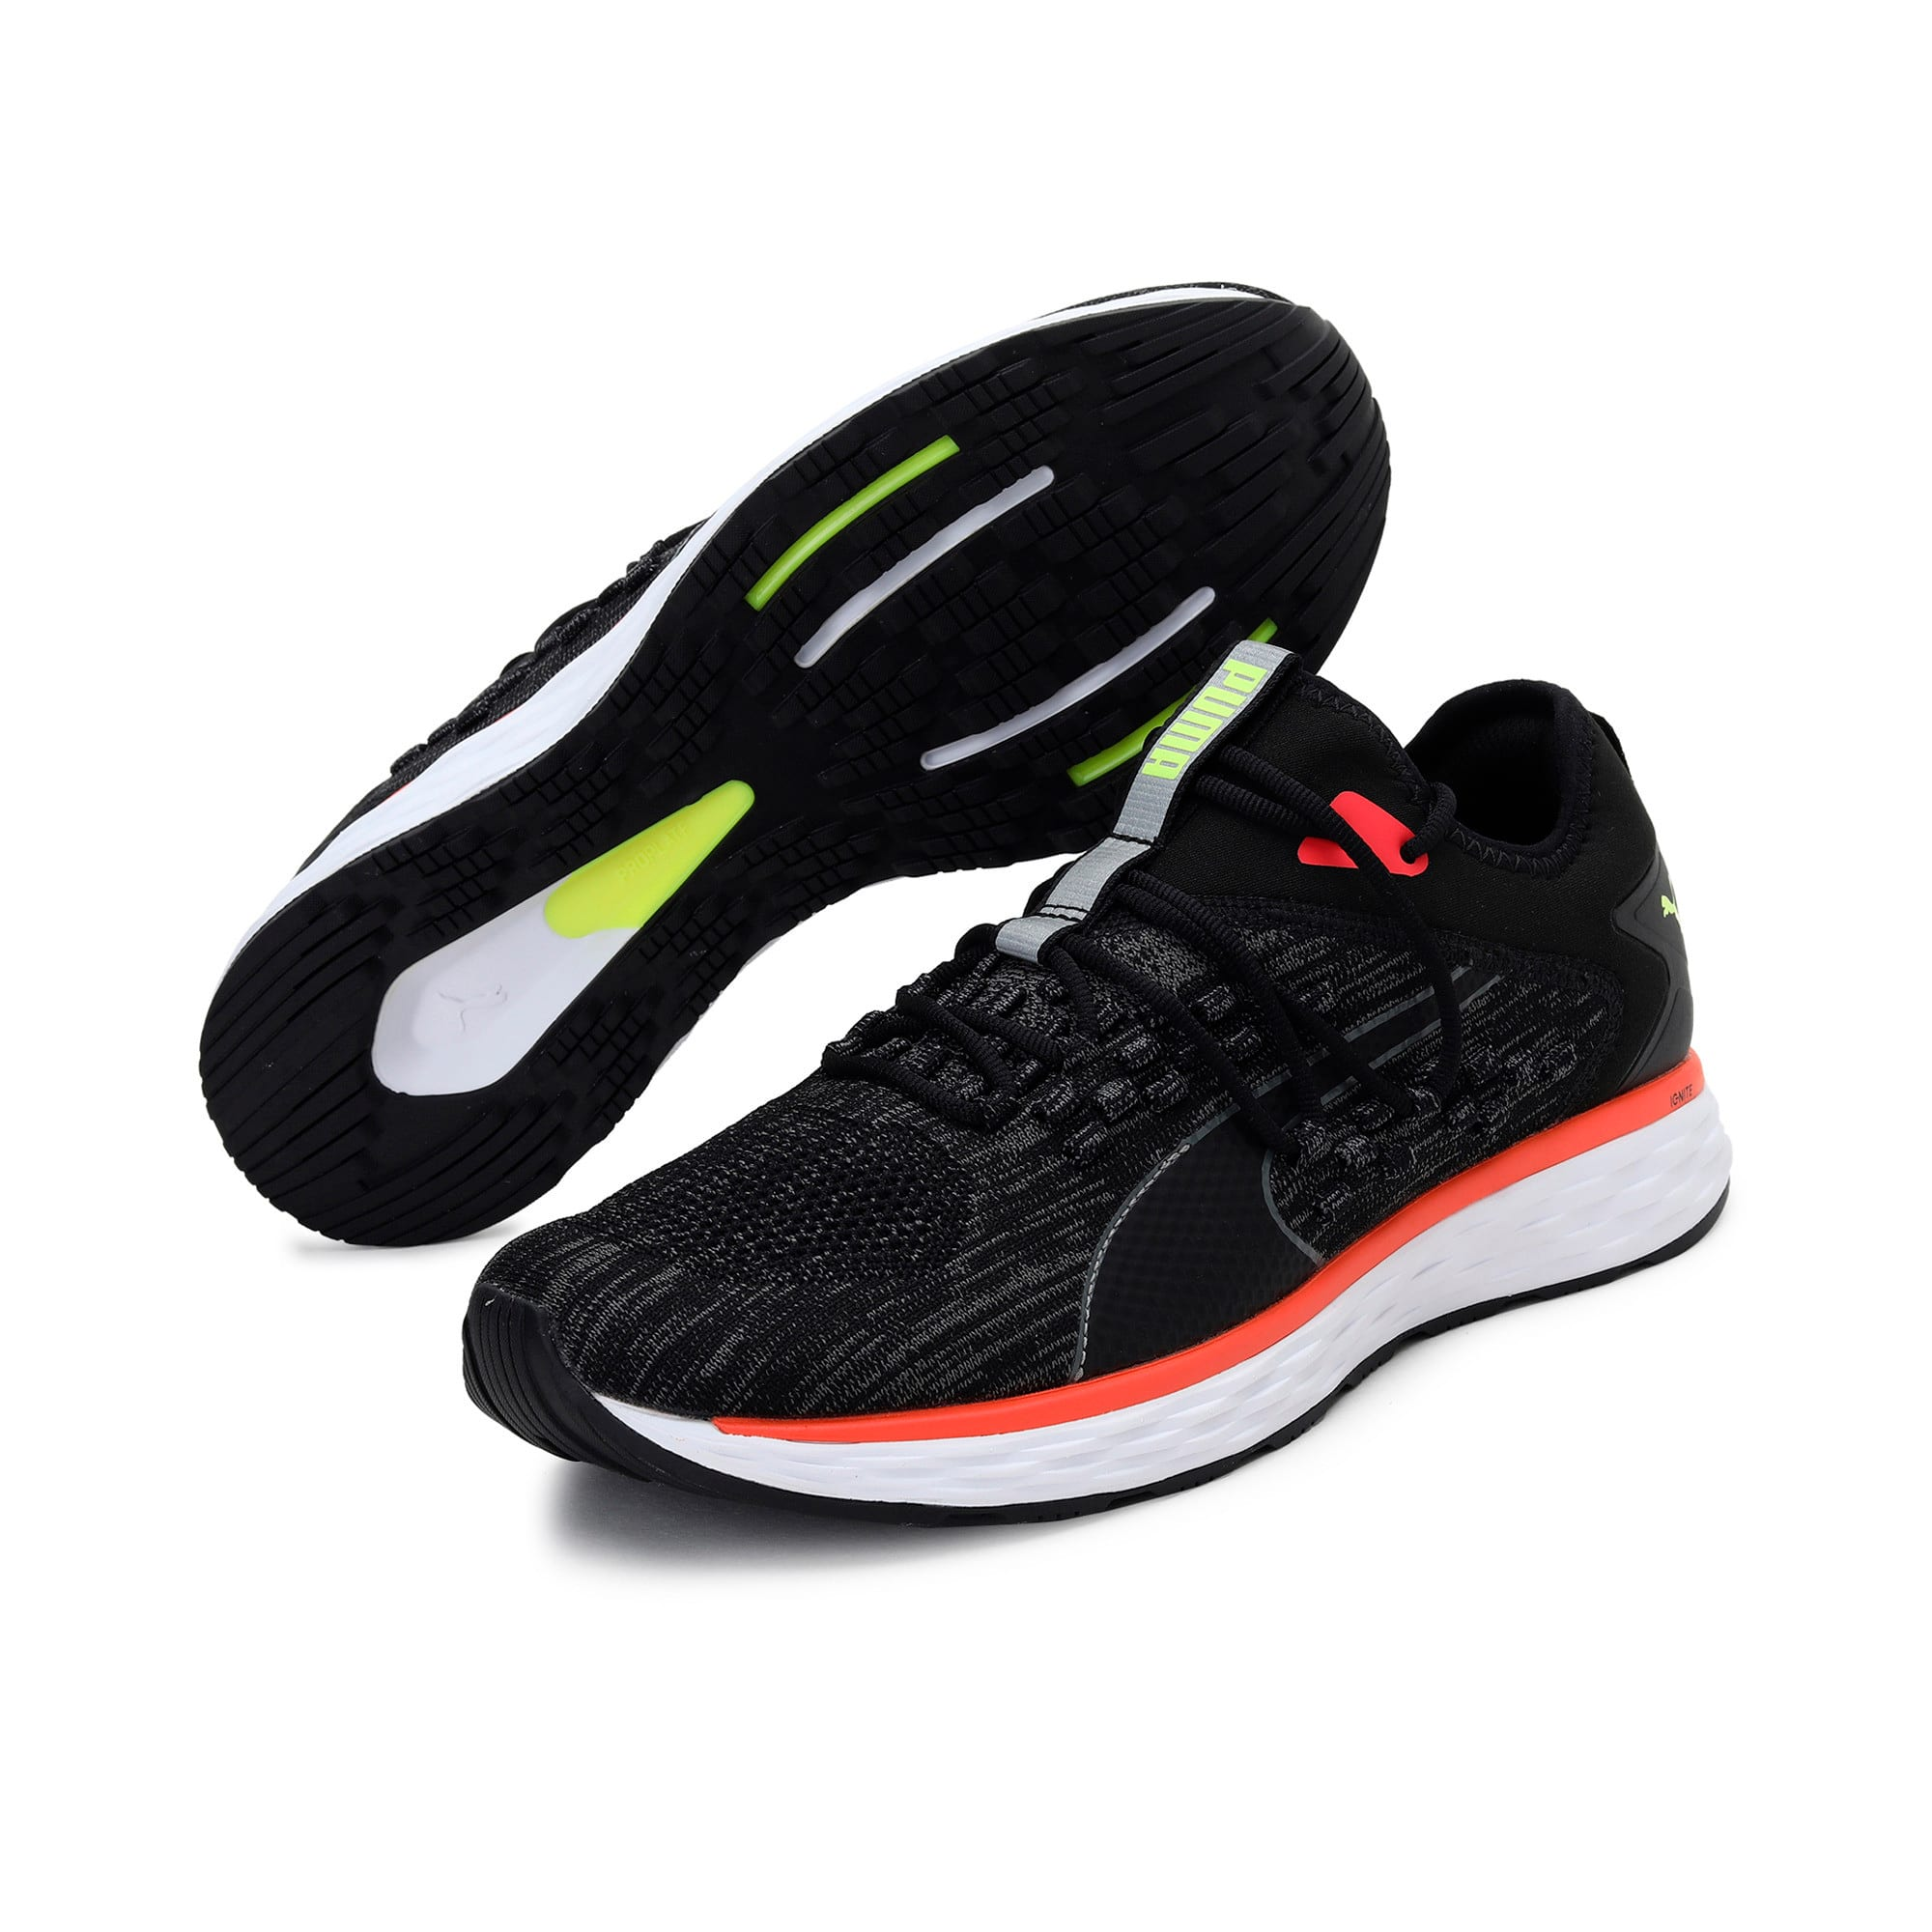 Thumbnail 4 of SPEED FUSEFIT Men's Running Shoes, Puma Black-Nrgy Red, medium-IND